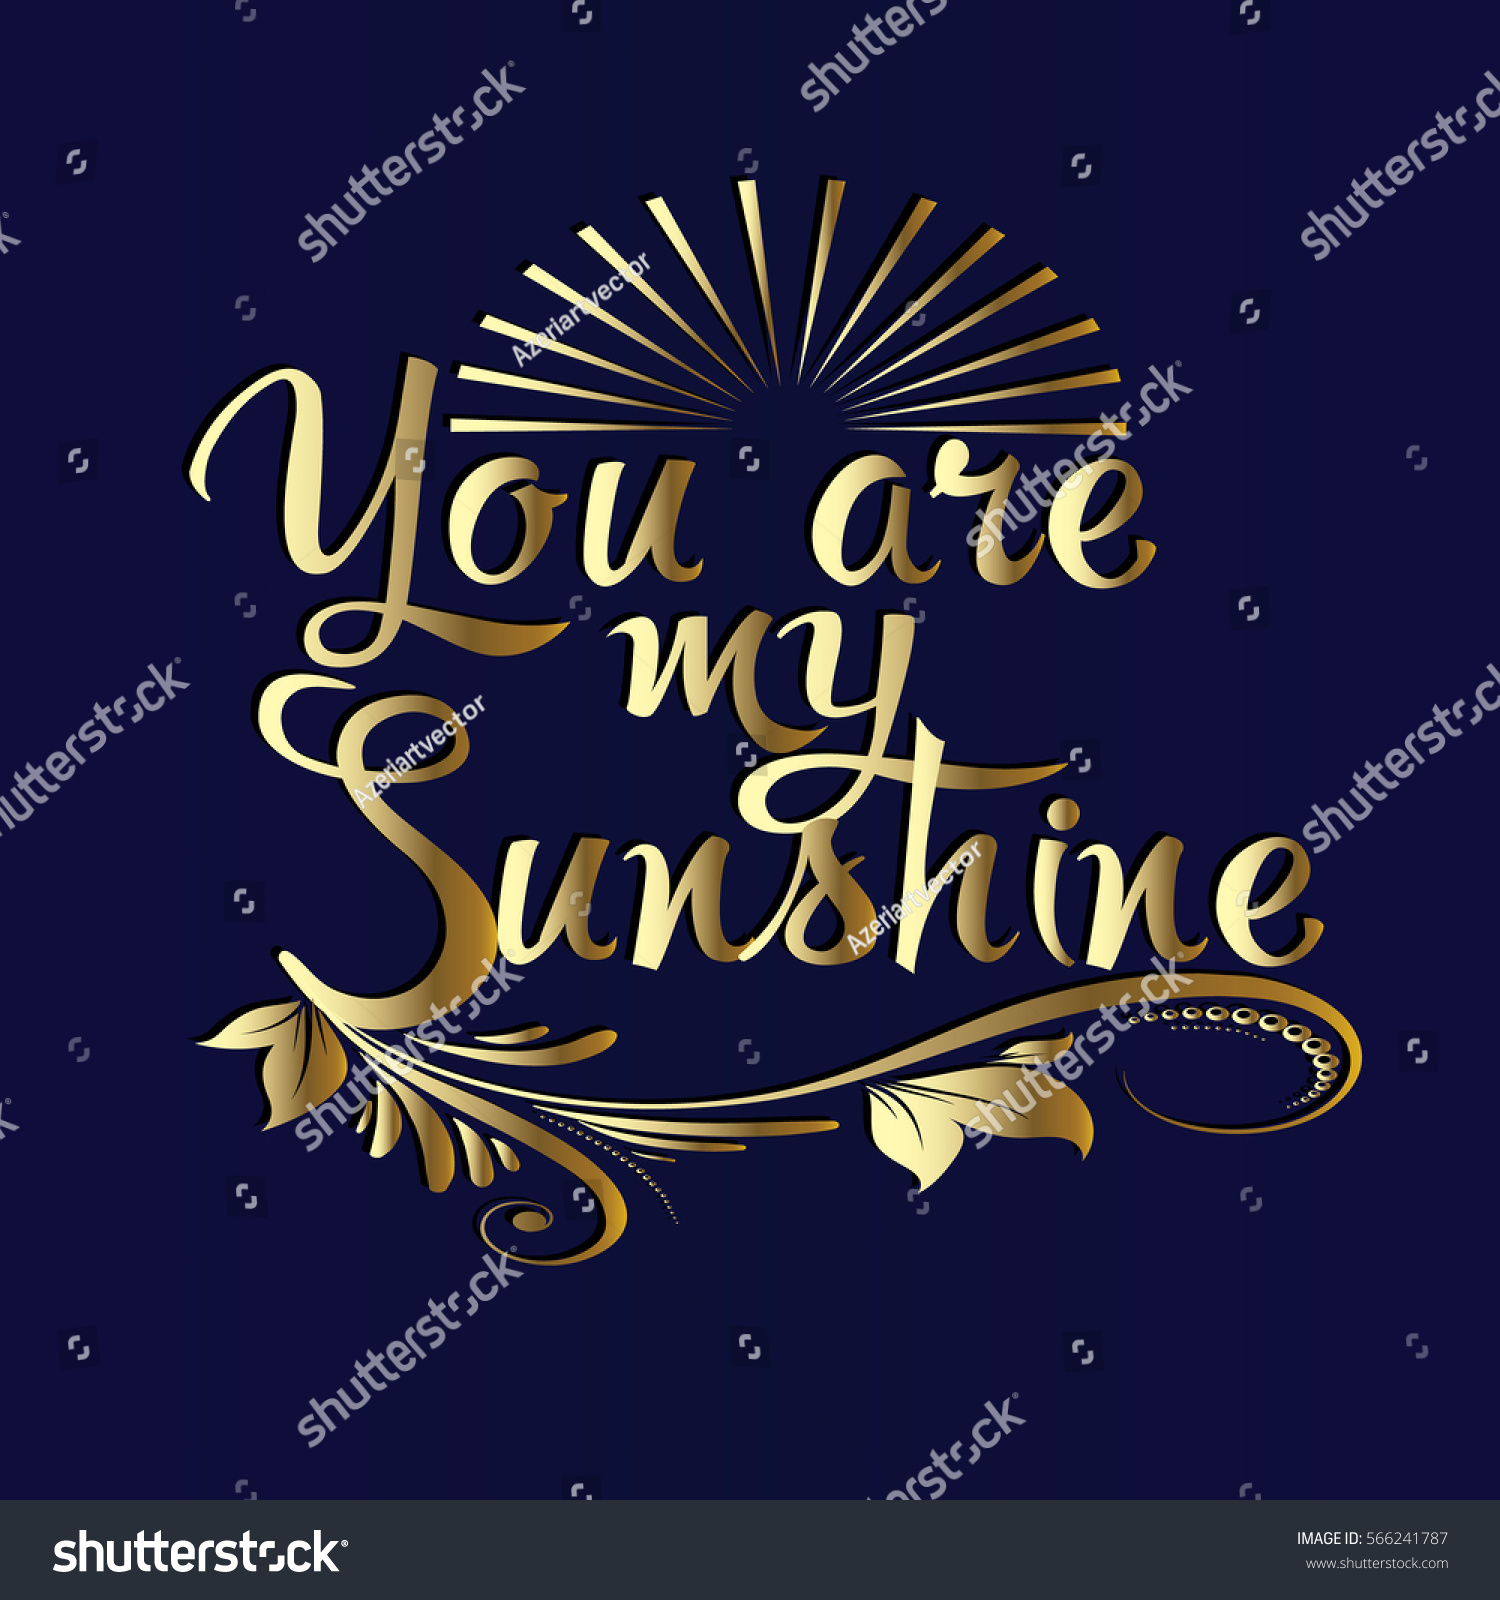 You my sunshine gold d vintage stock vector